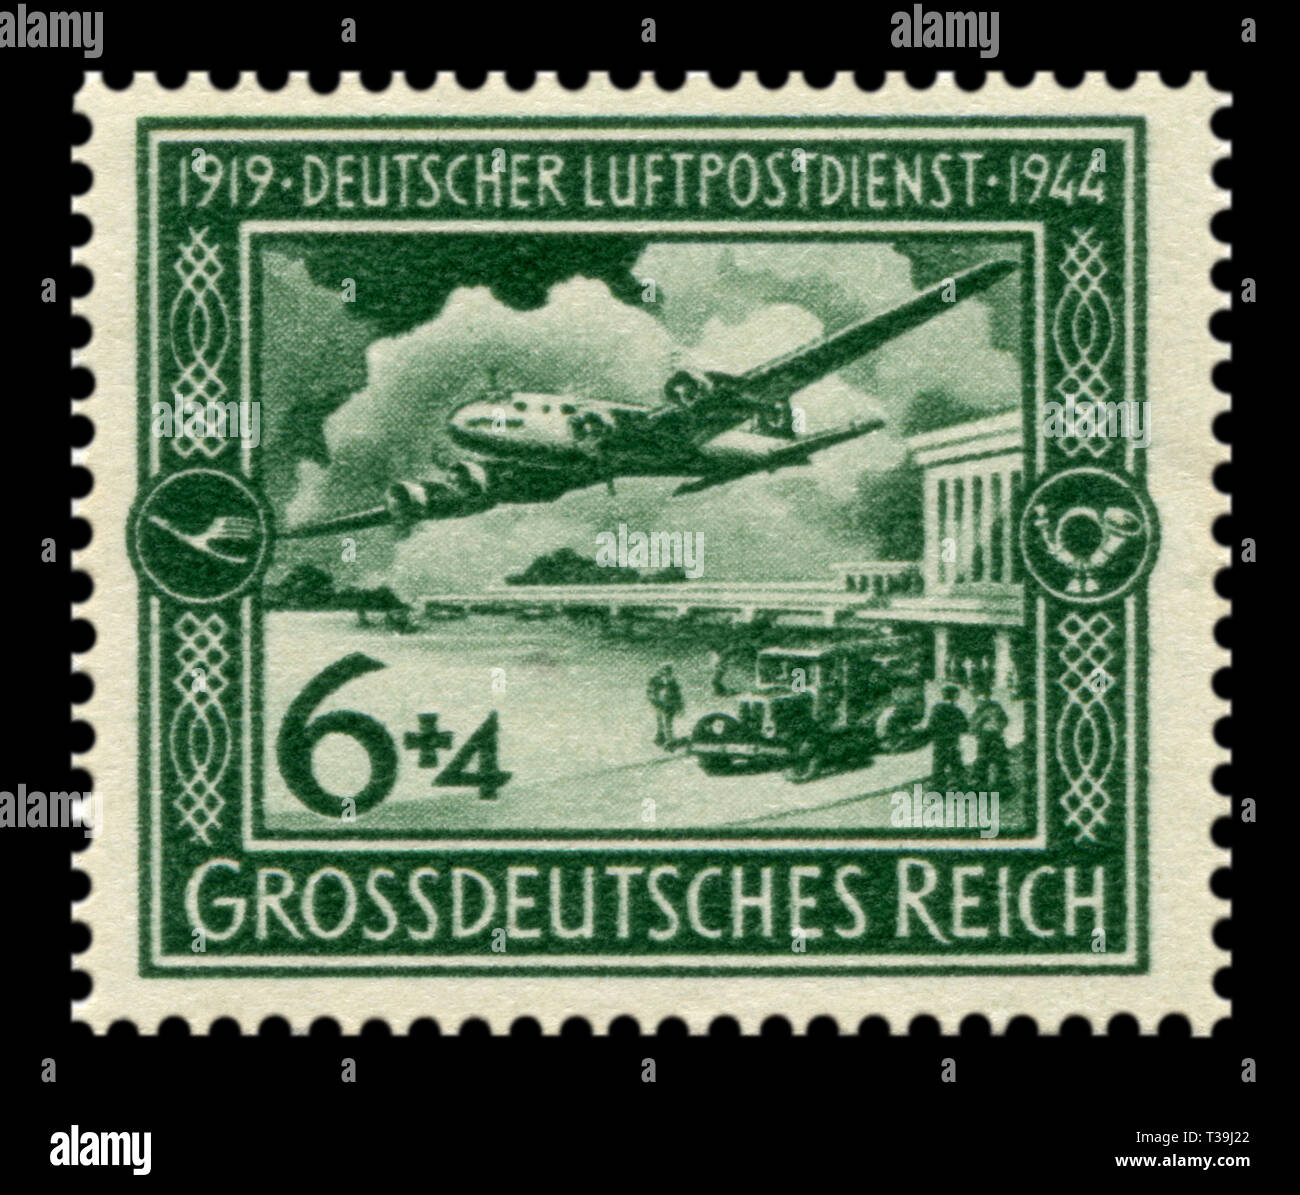 German historical stamp:  25th anniversary of the German postal air service.  Plane Focke-Wulf Fw 200 Condor in flight over the airport, airmail, 1944 - Stock Image